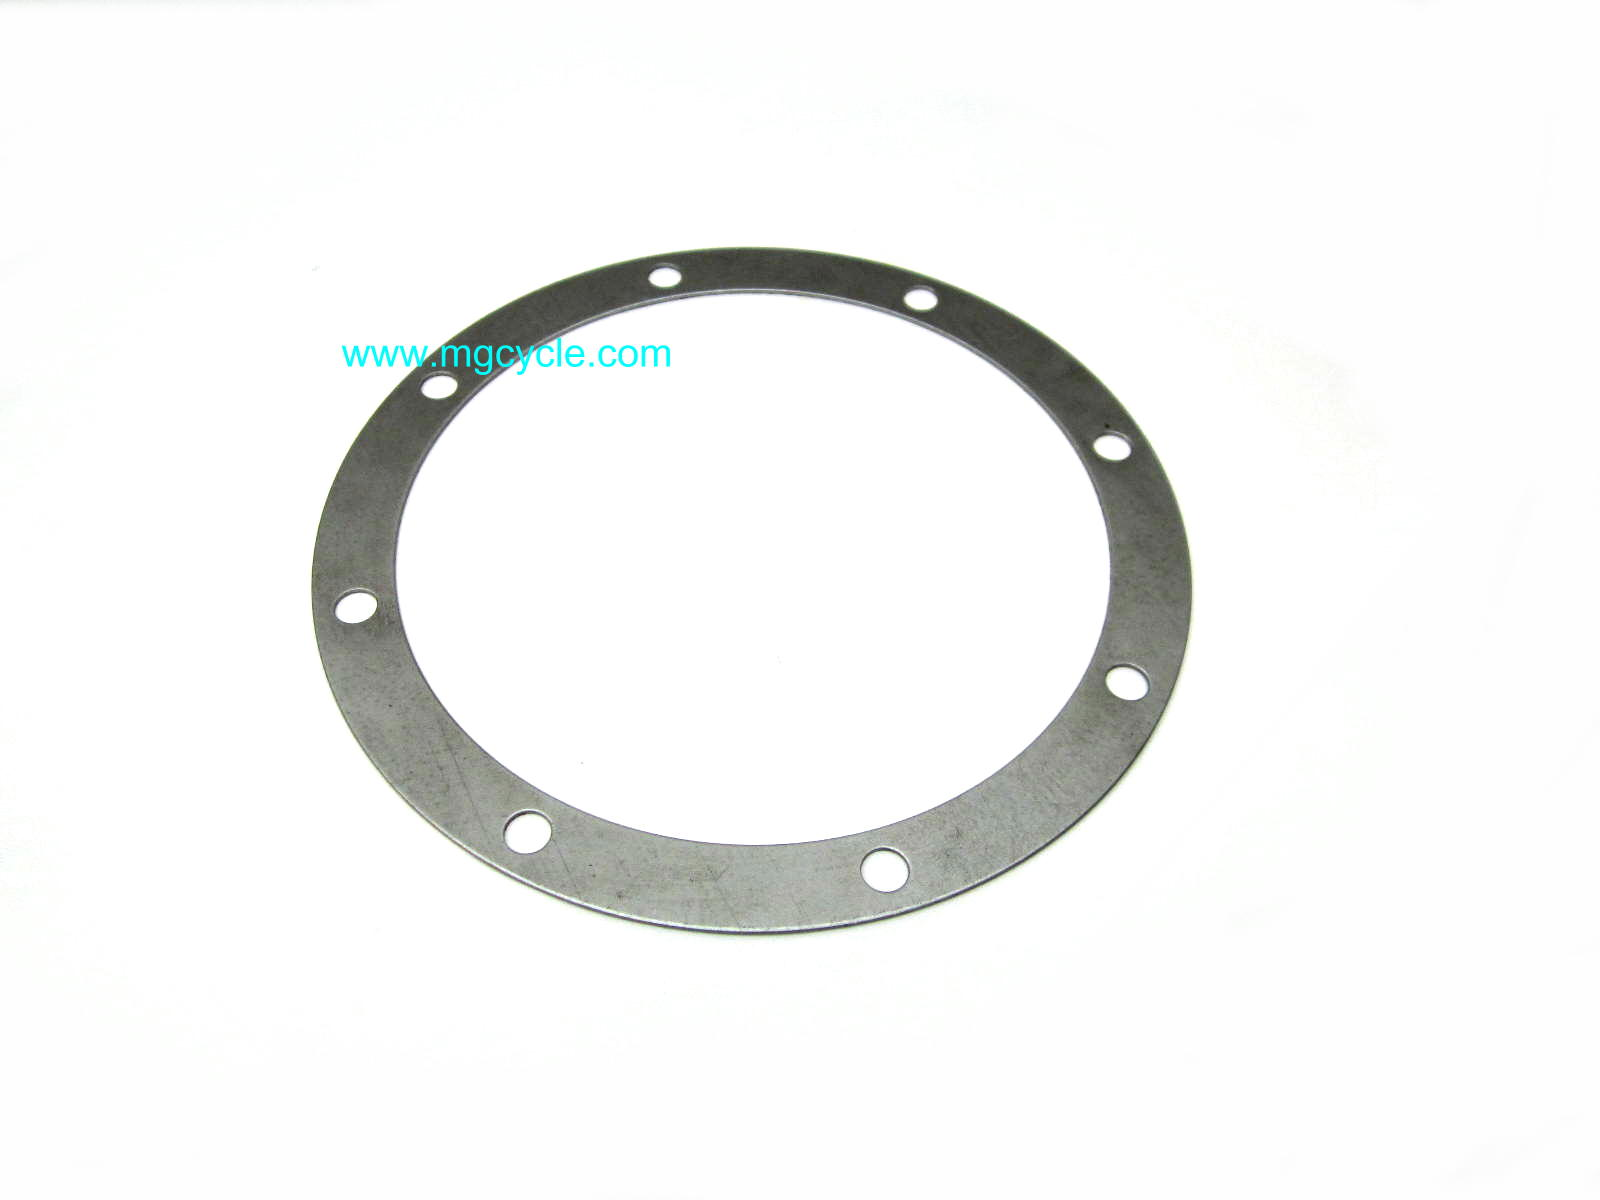 Rear drive box shim, final drive disc rear brake 1.8 mm